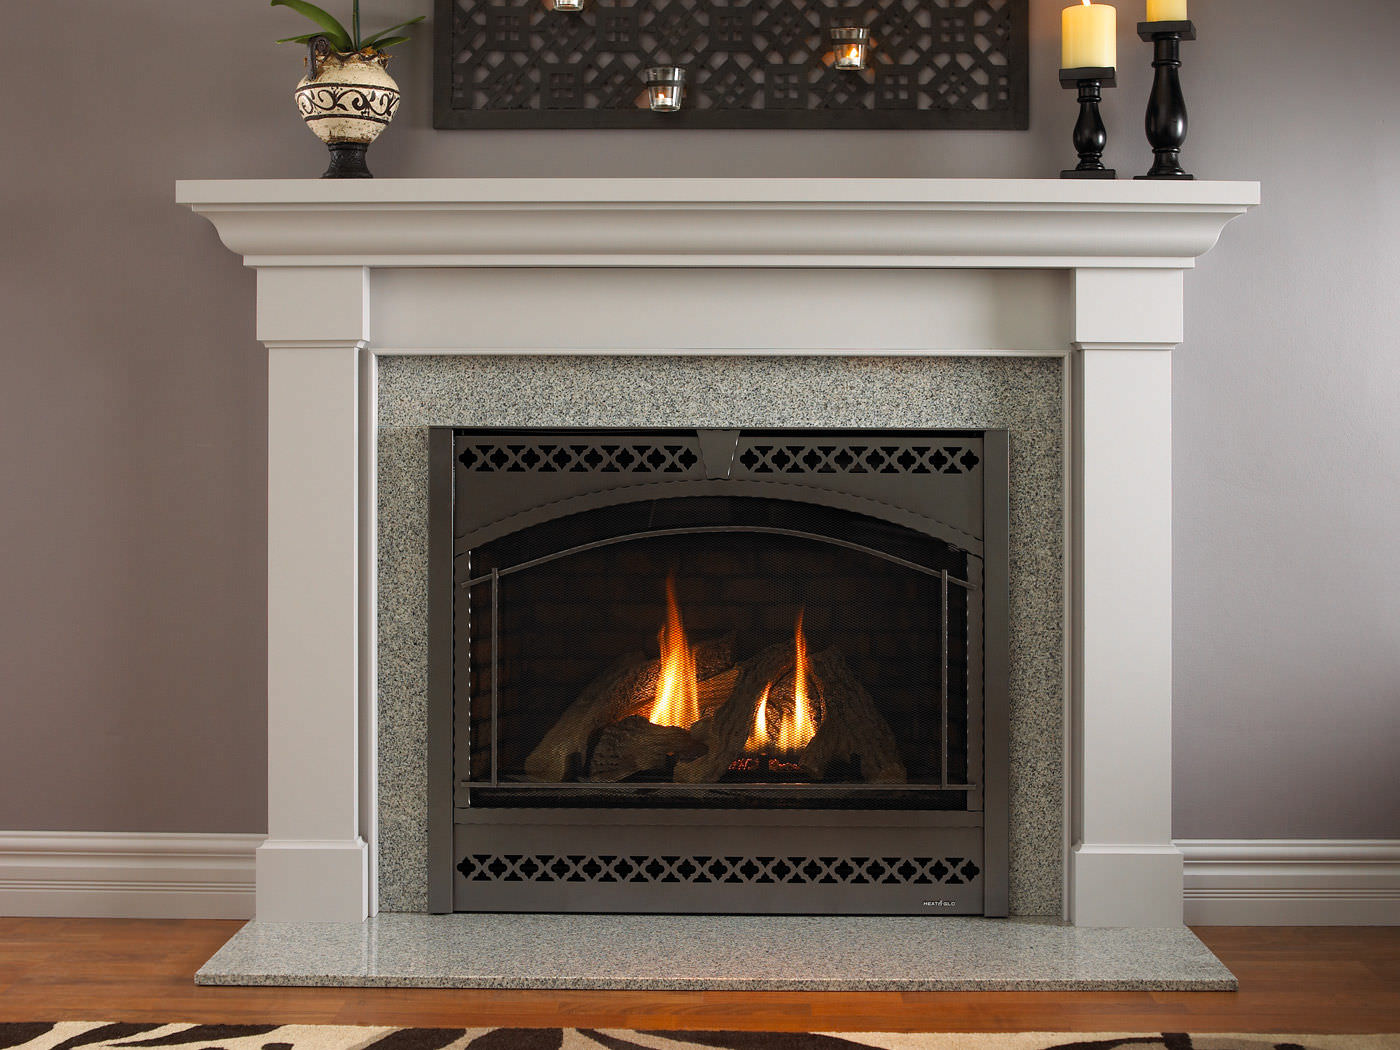 Discover all the information about the product Gas fireplace / traditional / closed hearth / built-in SLIMLINE - HEAT & GLO® and find where you can buy it. Contact the manufacturer directly to receive a quote.